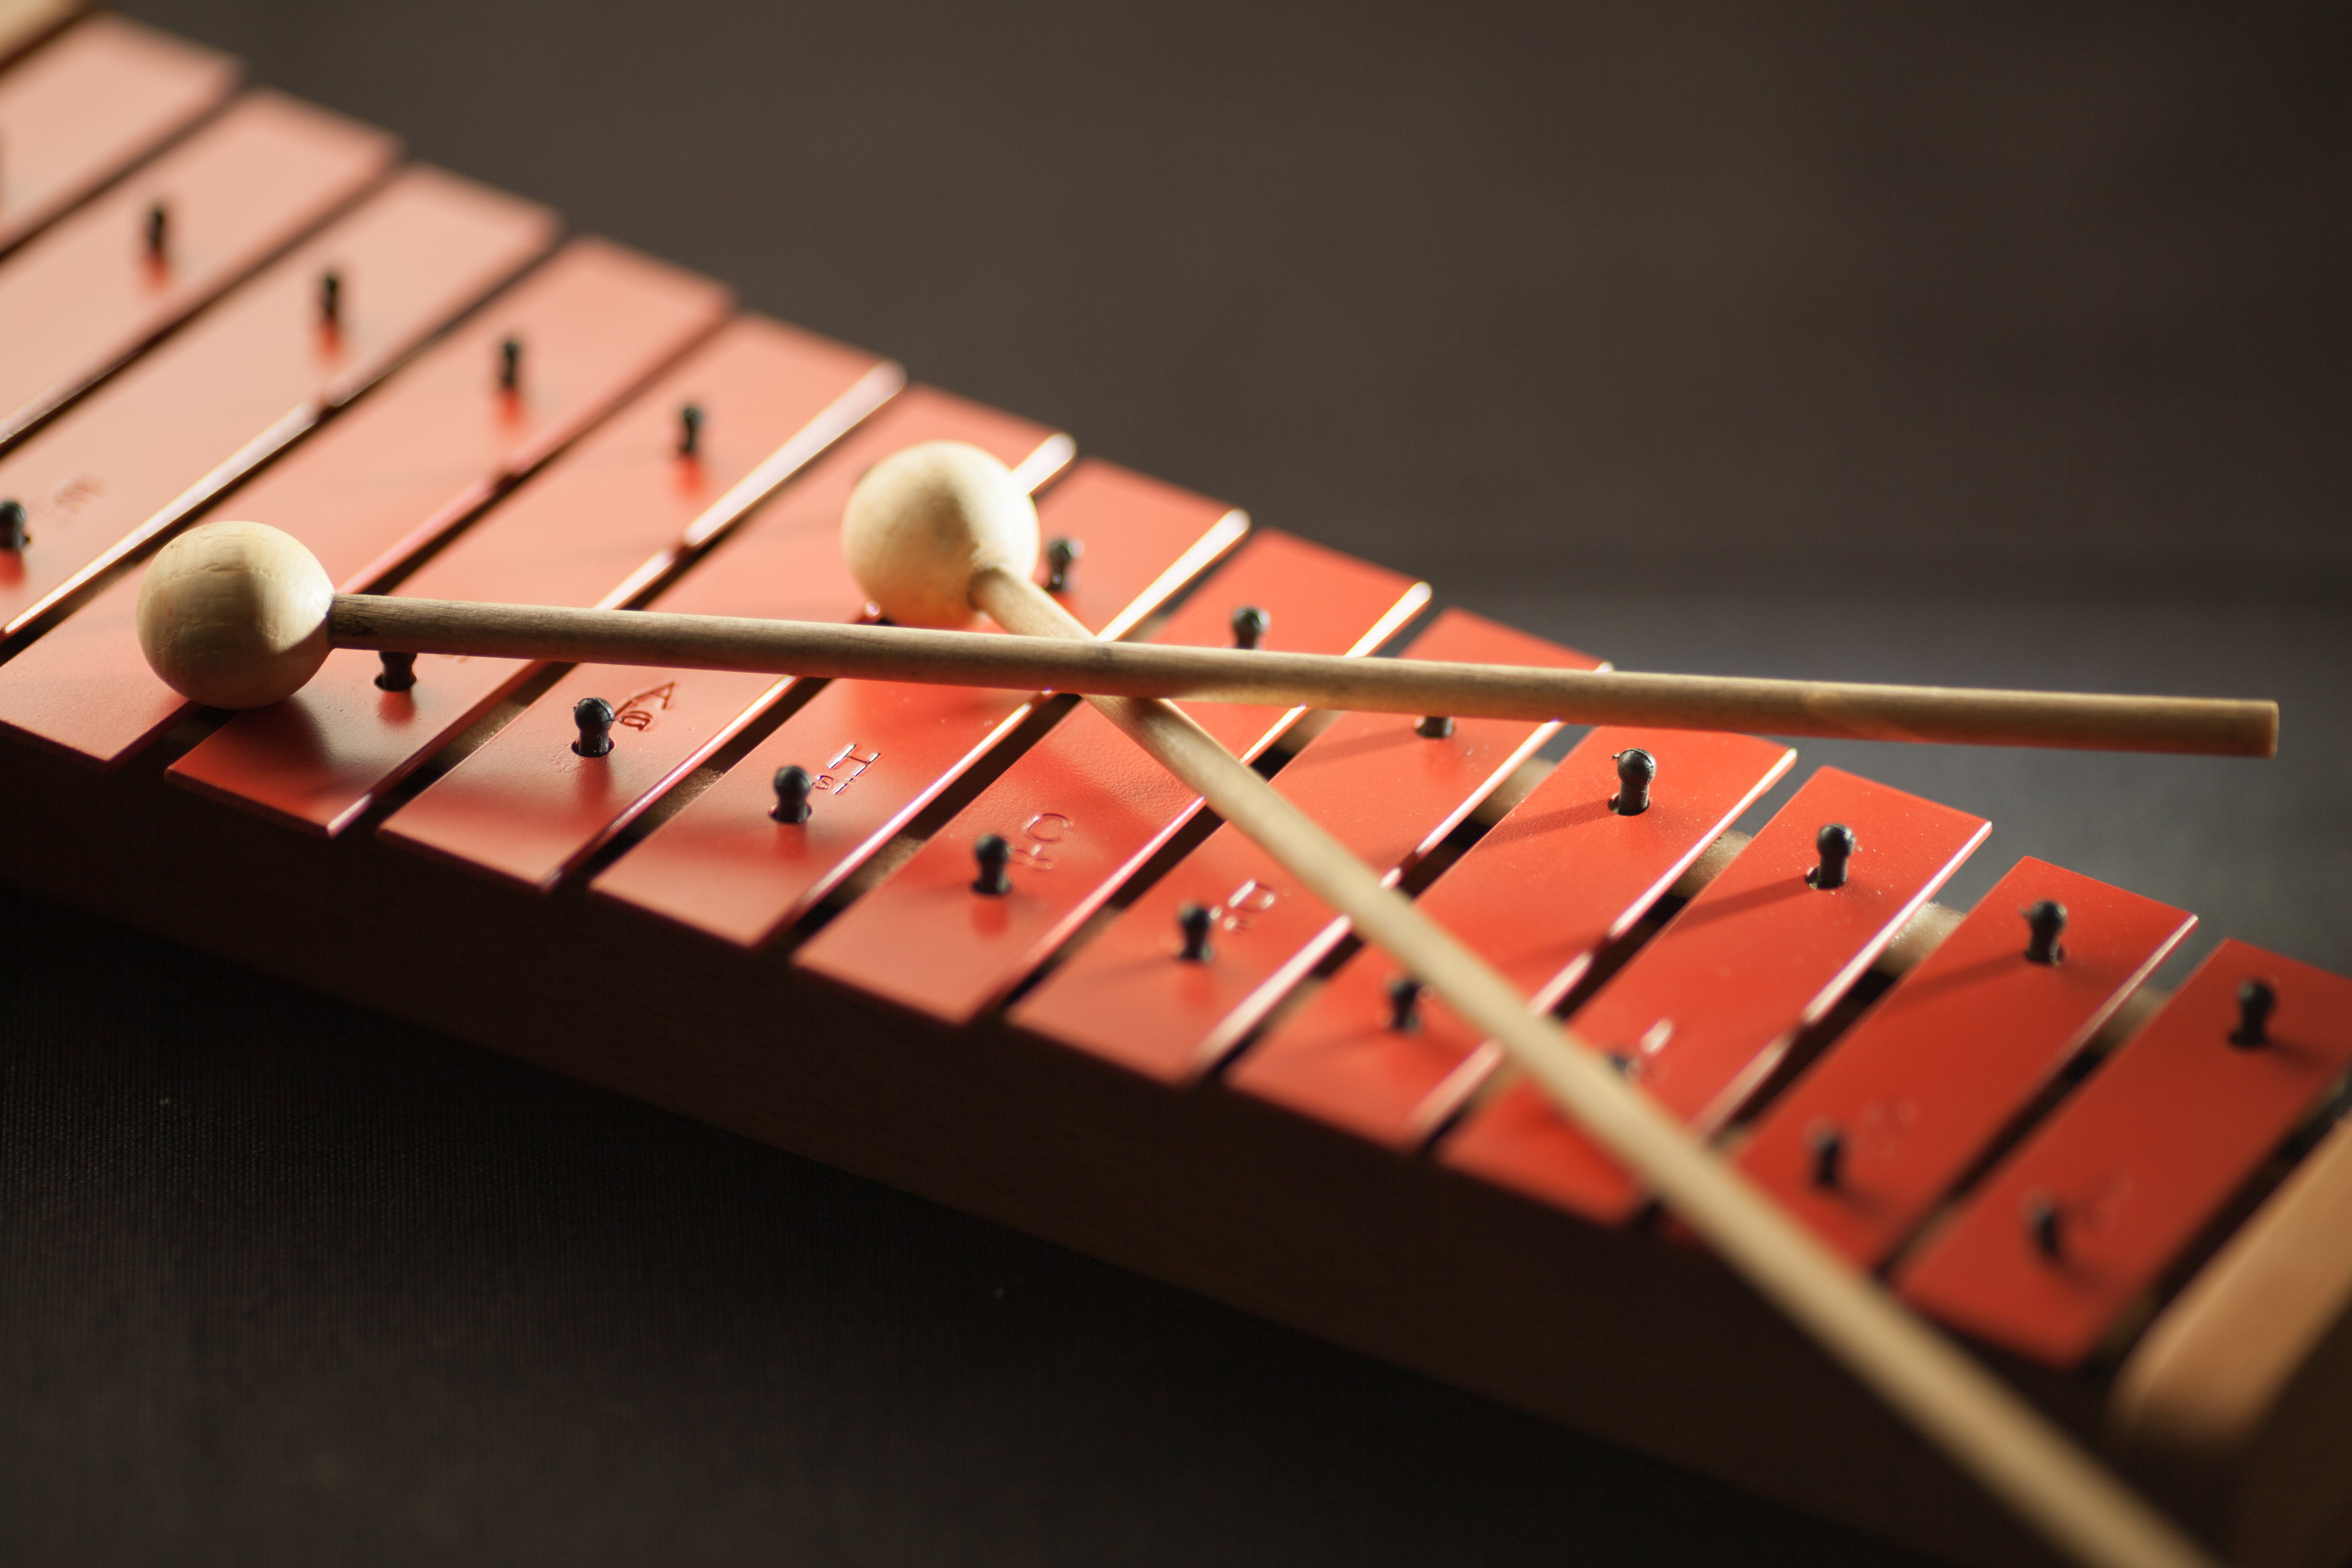 Shallow Focus Photography of Red Xylophone